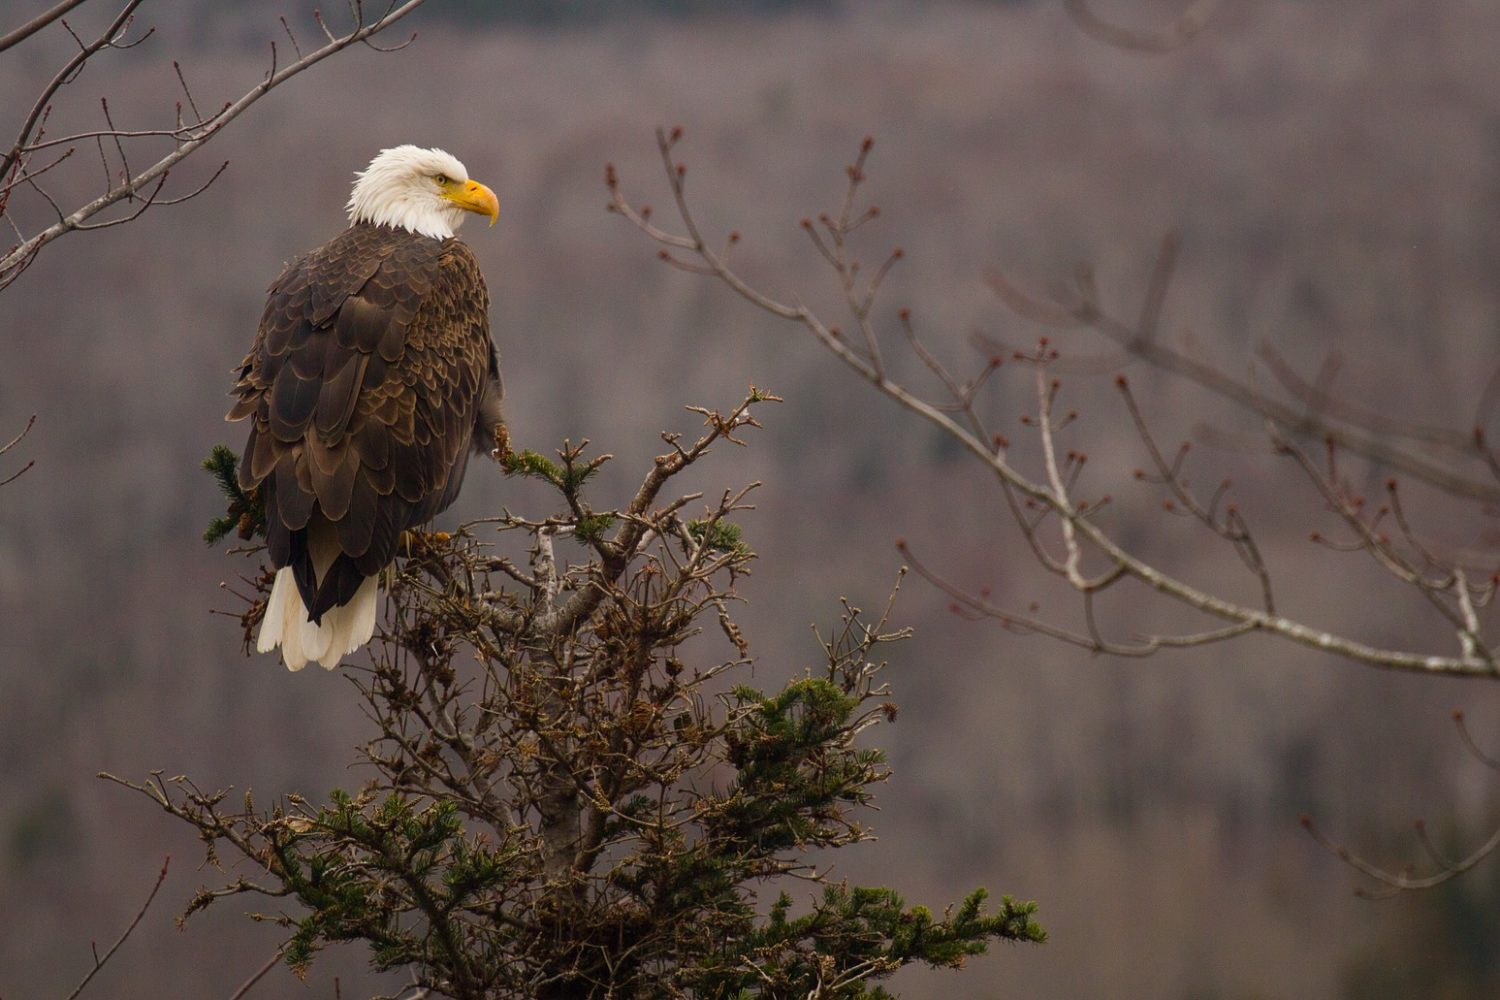 Bald eagles frequently seen in Nova Scotia